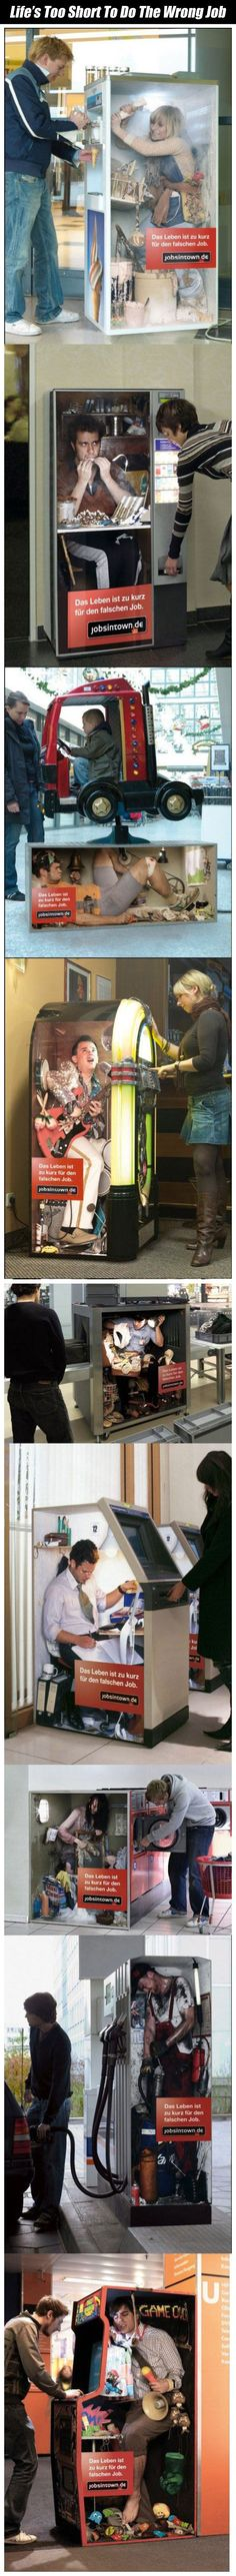 Life Is Too Short To Do The Wrong Job funny lol humor funny pictures funny photos funny images hilarious pictures